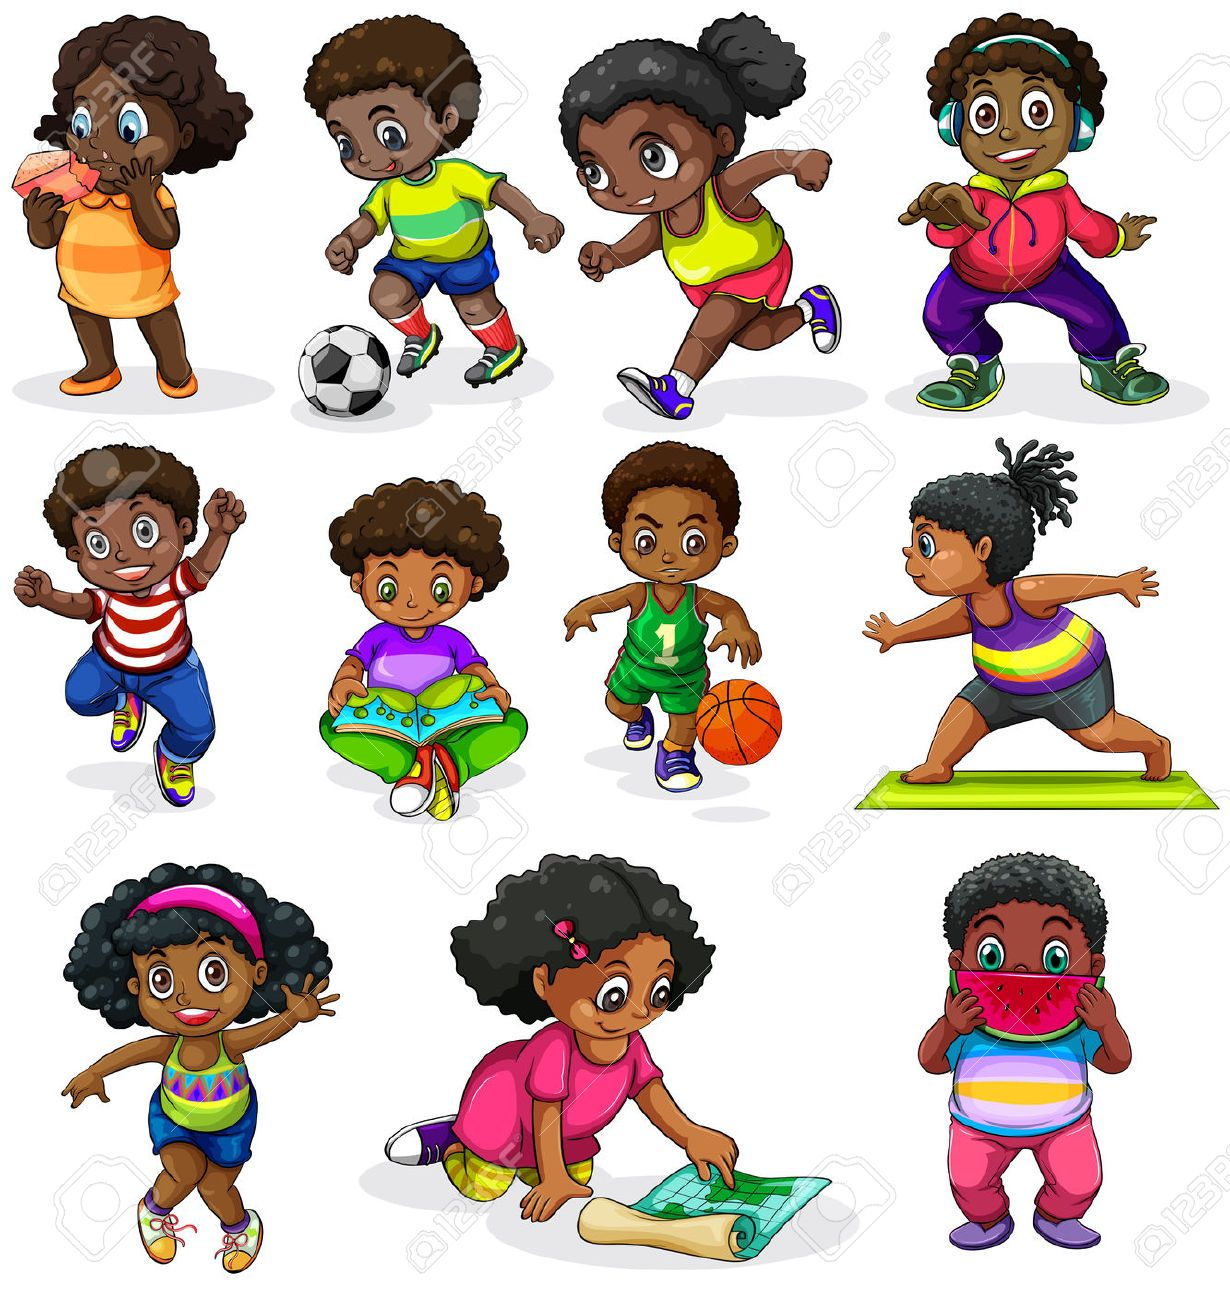 Activities clipart illustration. Of the black kids